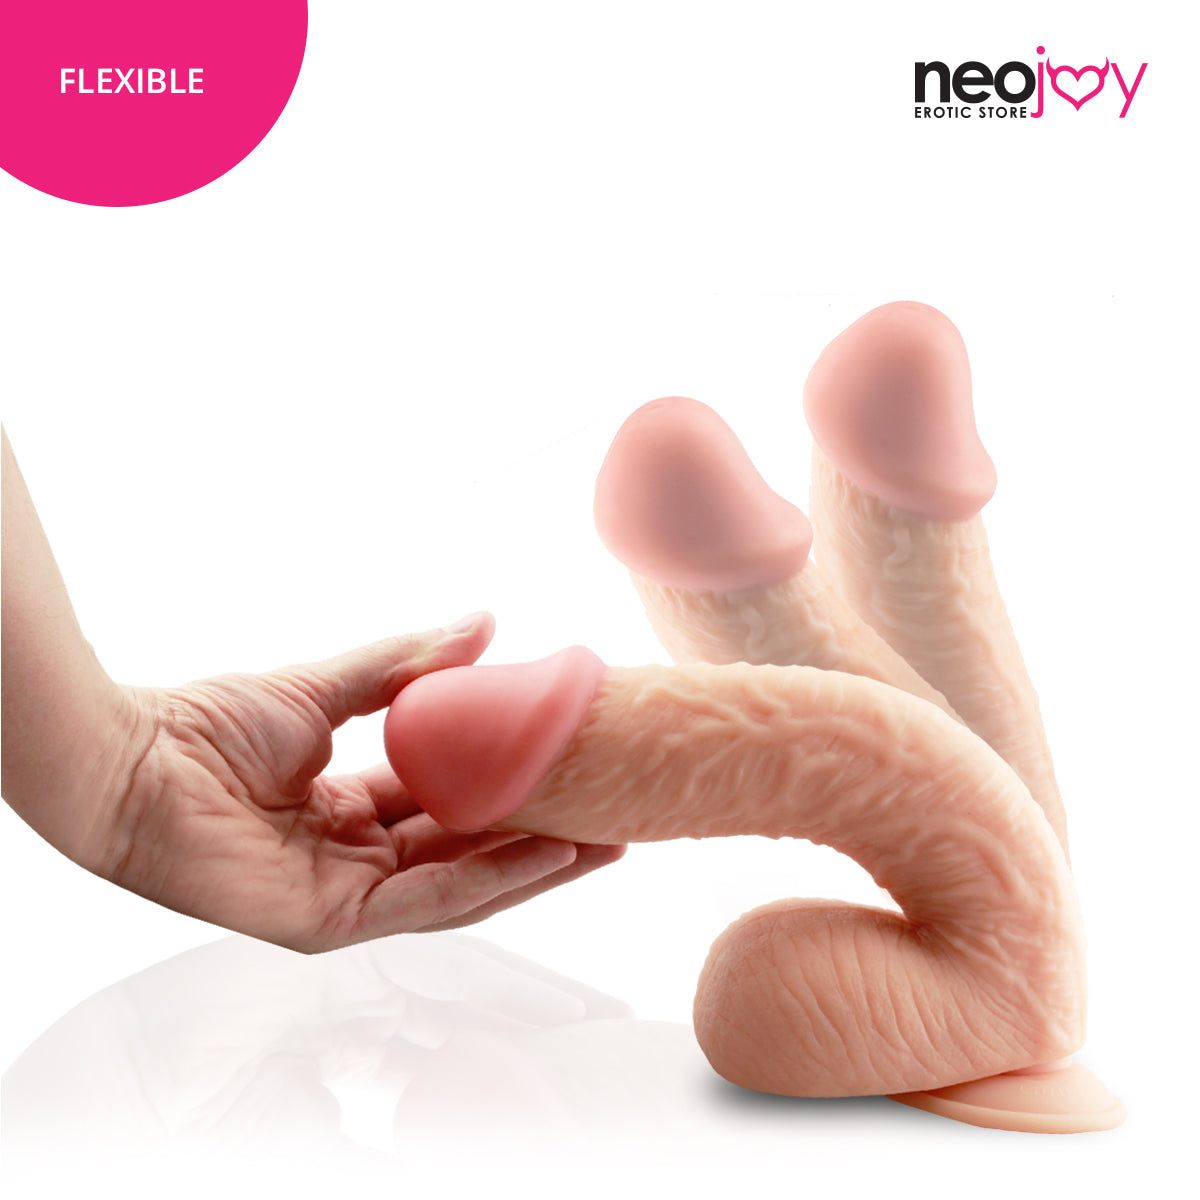 Neojoy Dong Realistic Dildo With Suction Cup - Flesh 11.8 inch - 29.97 cm 150274+154125